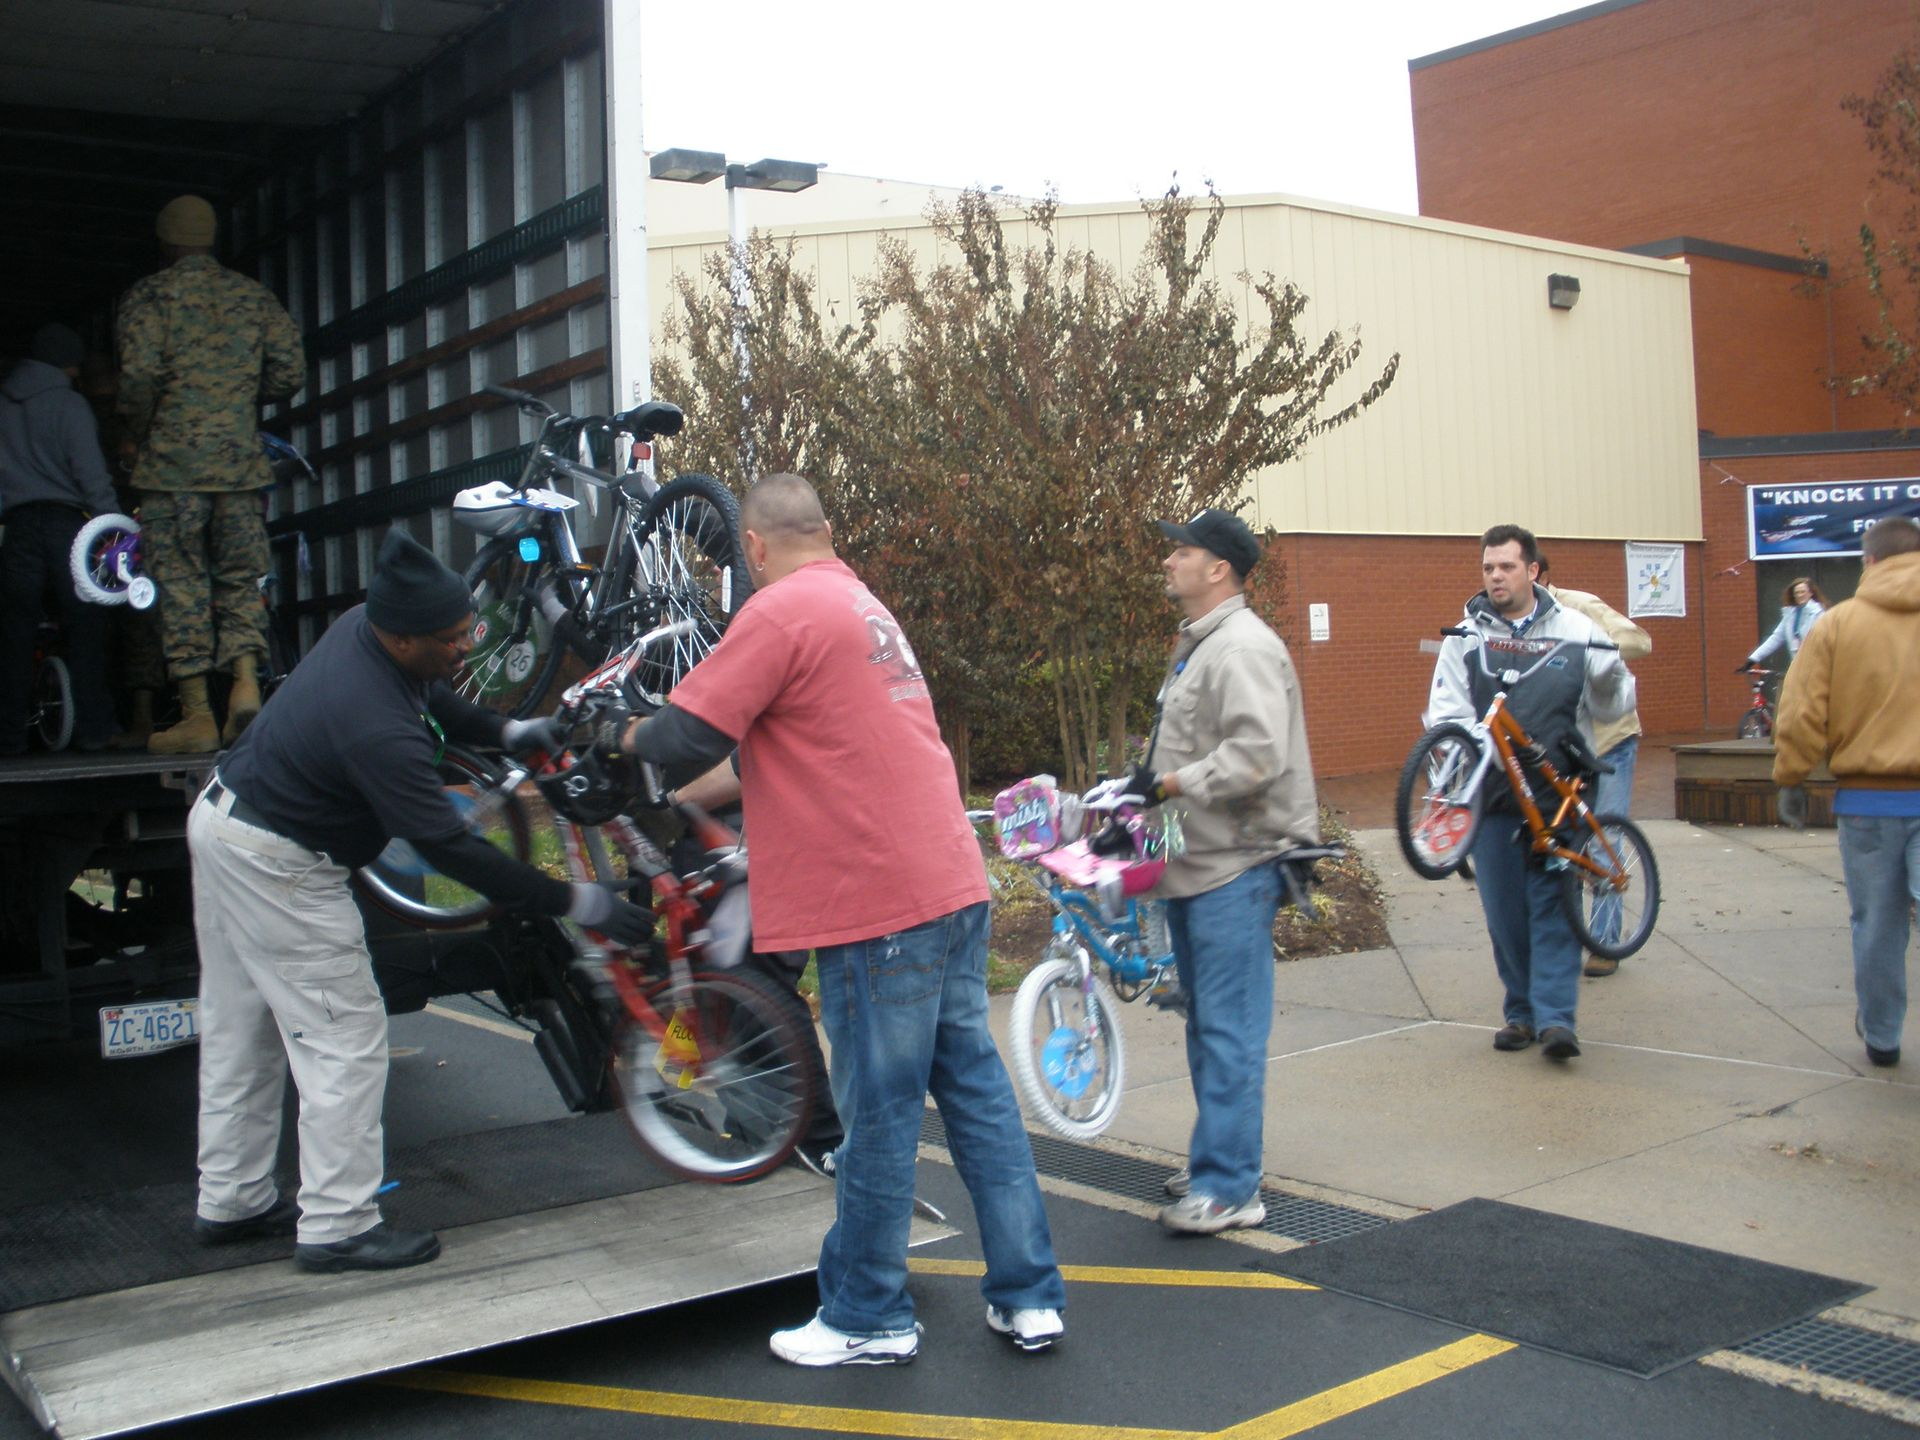 McGuire's bike collection for Toys for Tots has increased every year – this year the site collected 220 bikes.